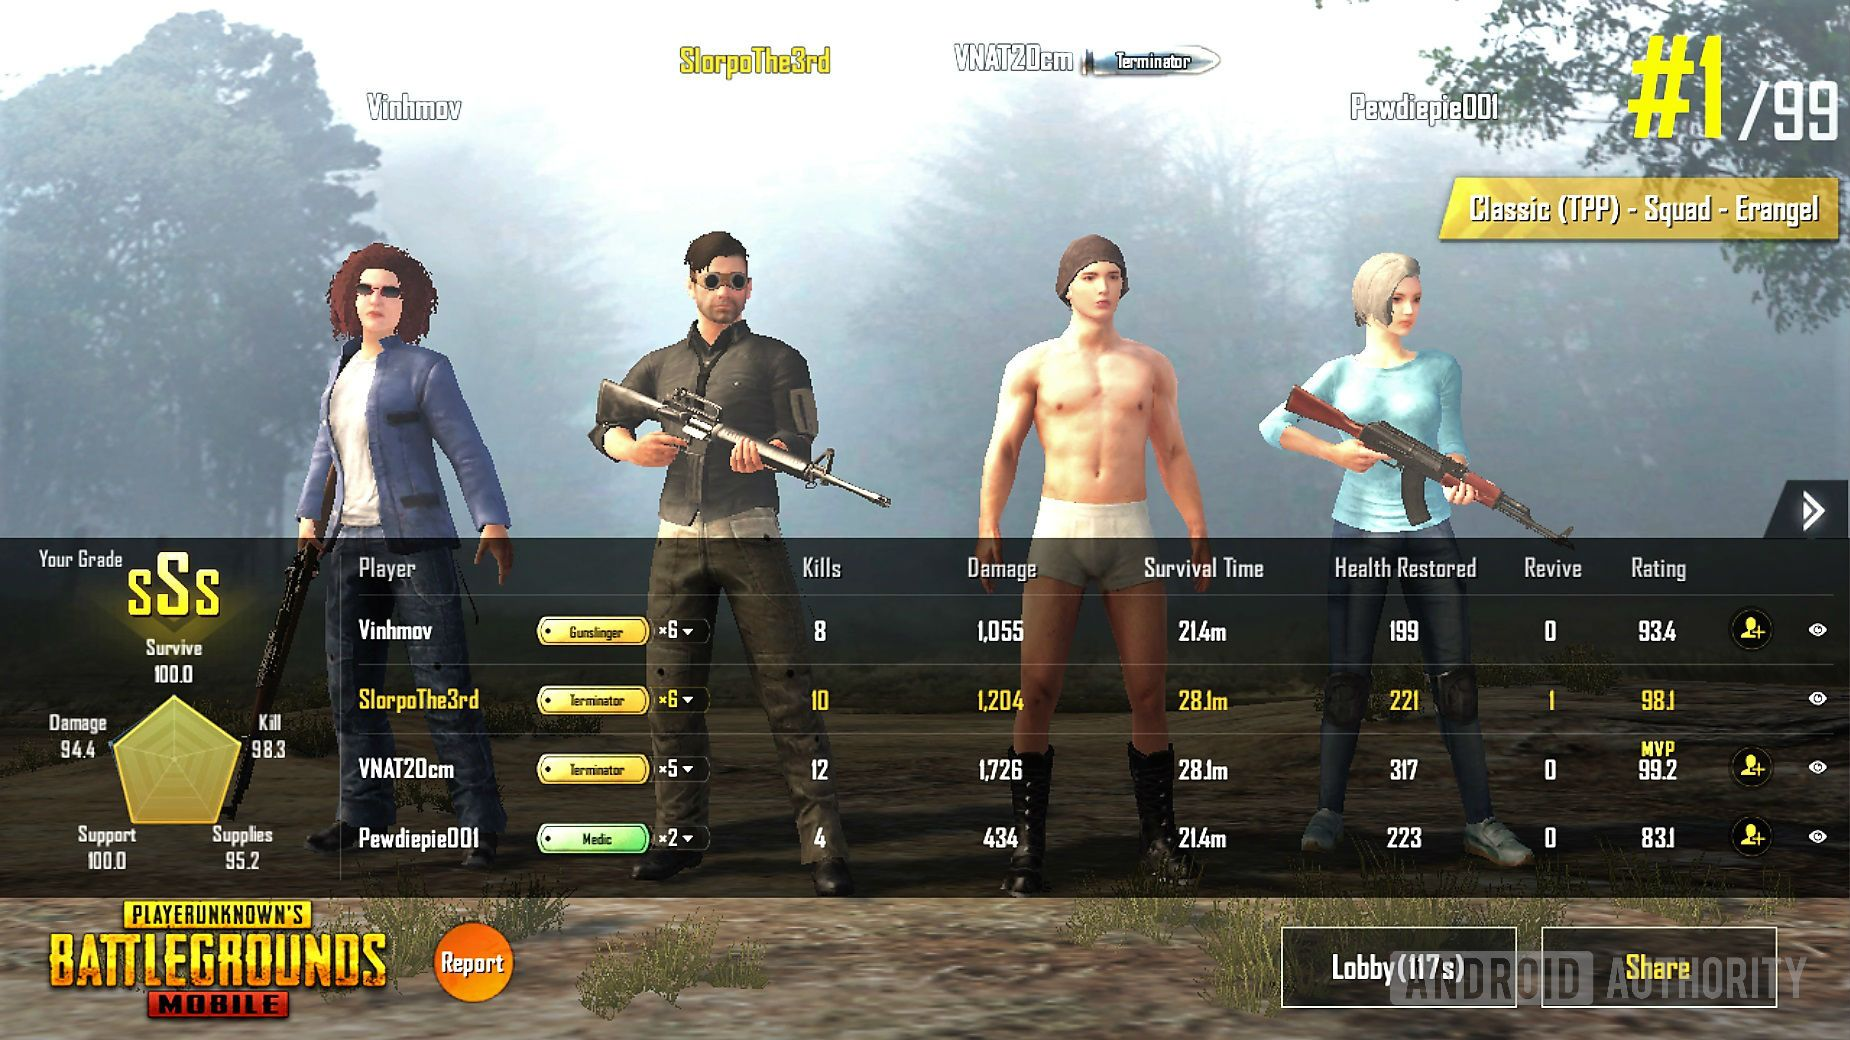 The Best Pubg Mobile Emulator Is Tencent Gaming Buddy Nogame No Life App Store Games Games